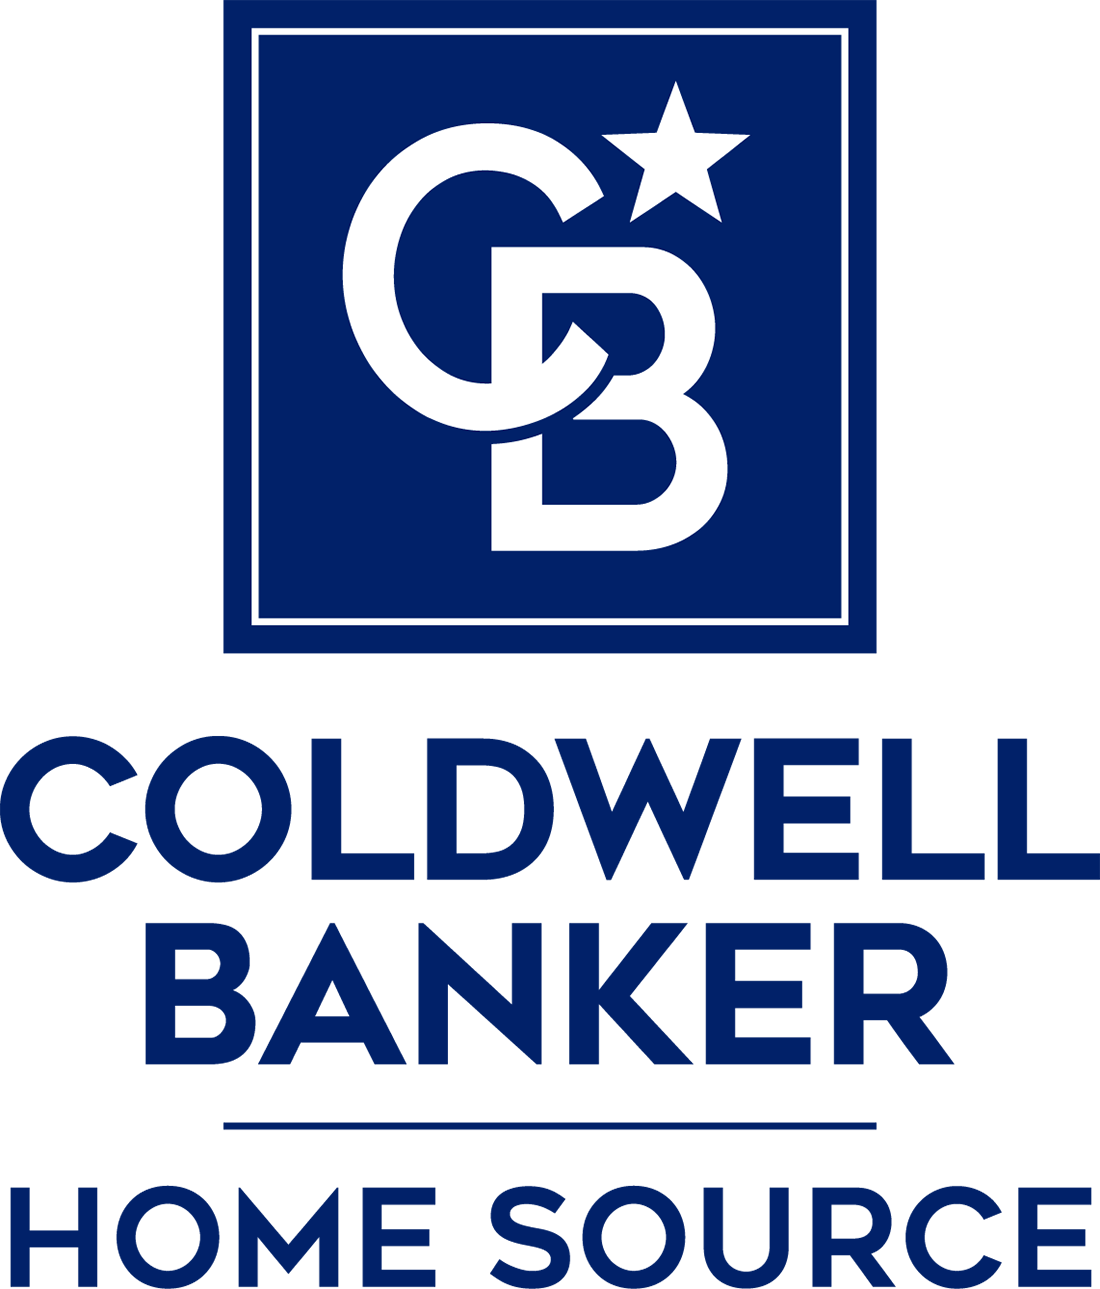 Kasey Gower - Coldwell Banker Home Source Logo